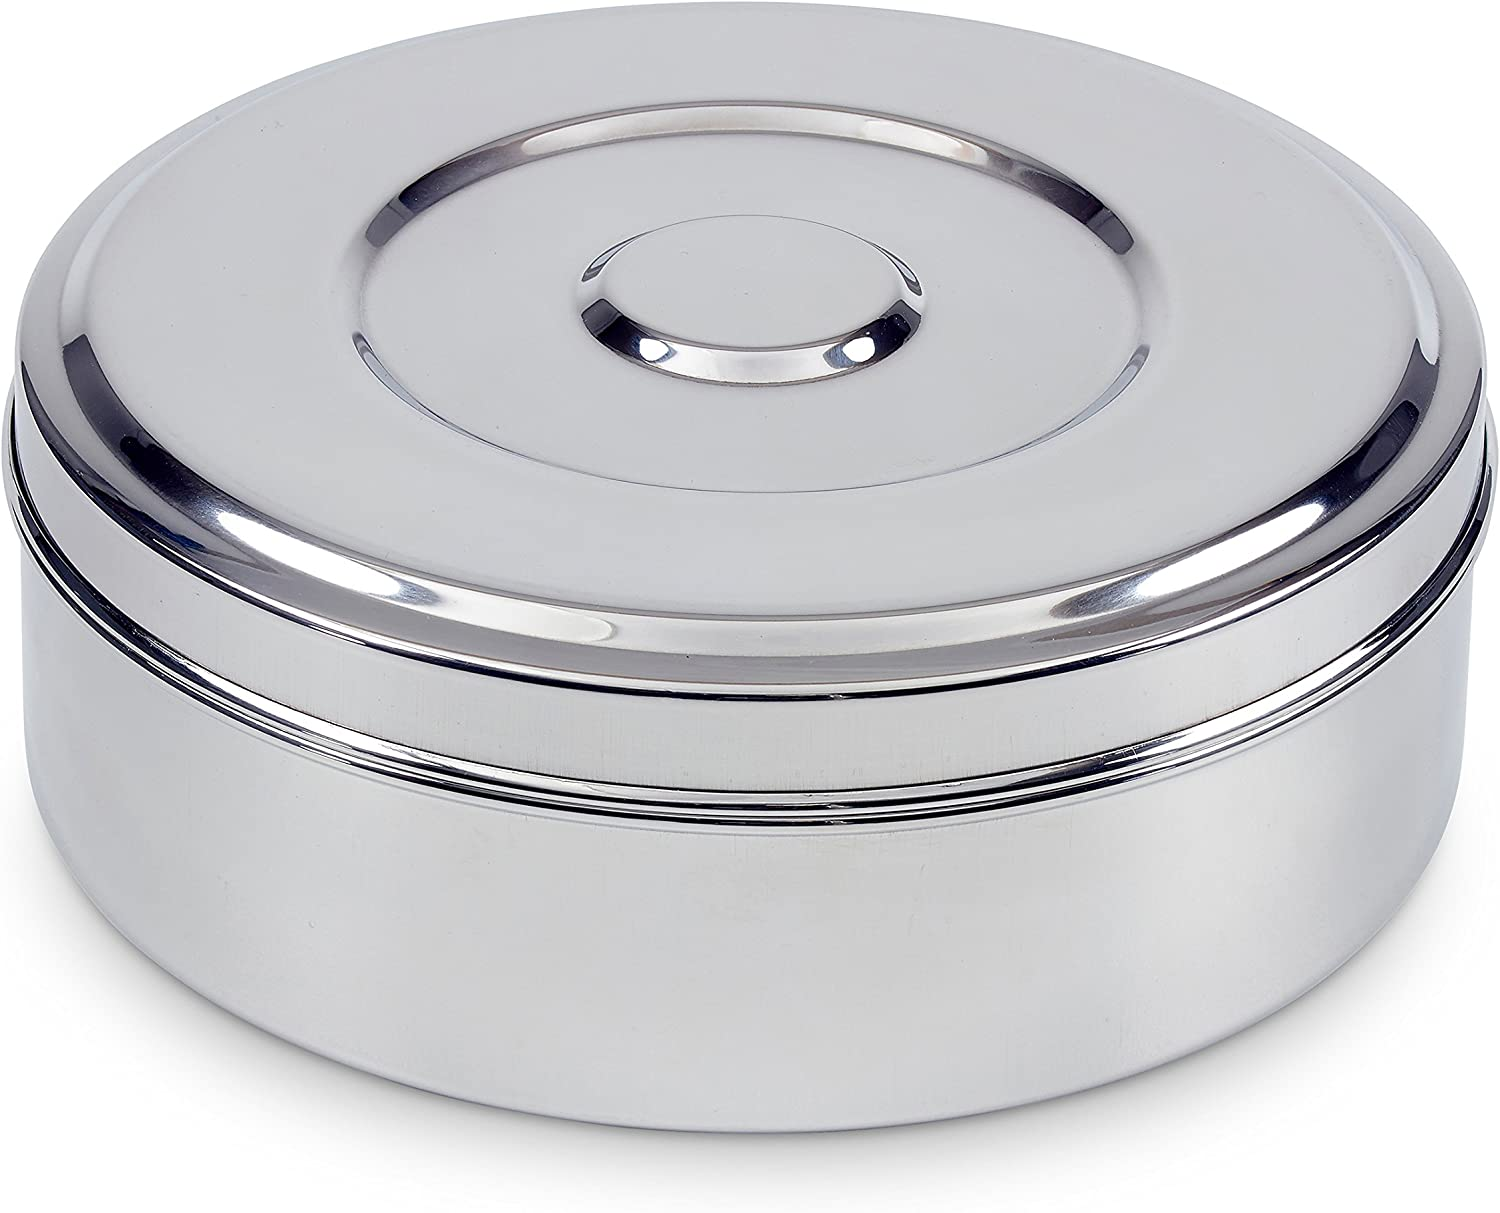 Spice Container - Steel, 7 seperate compartments, airtight